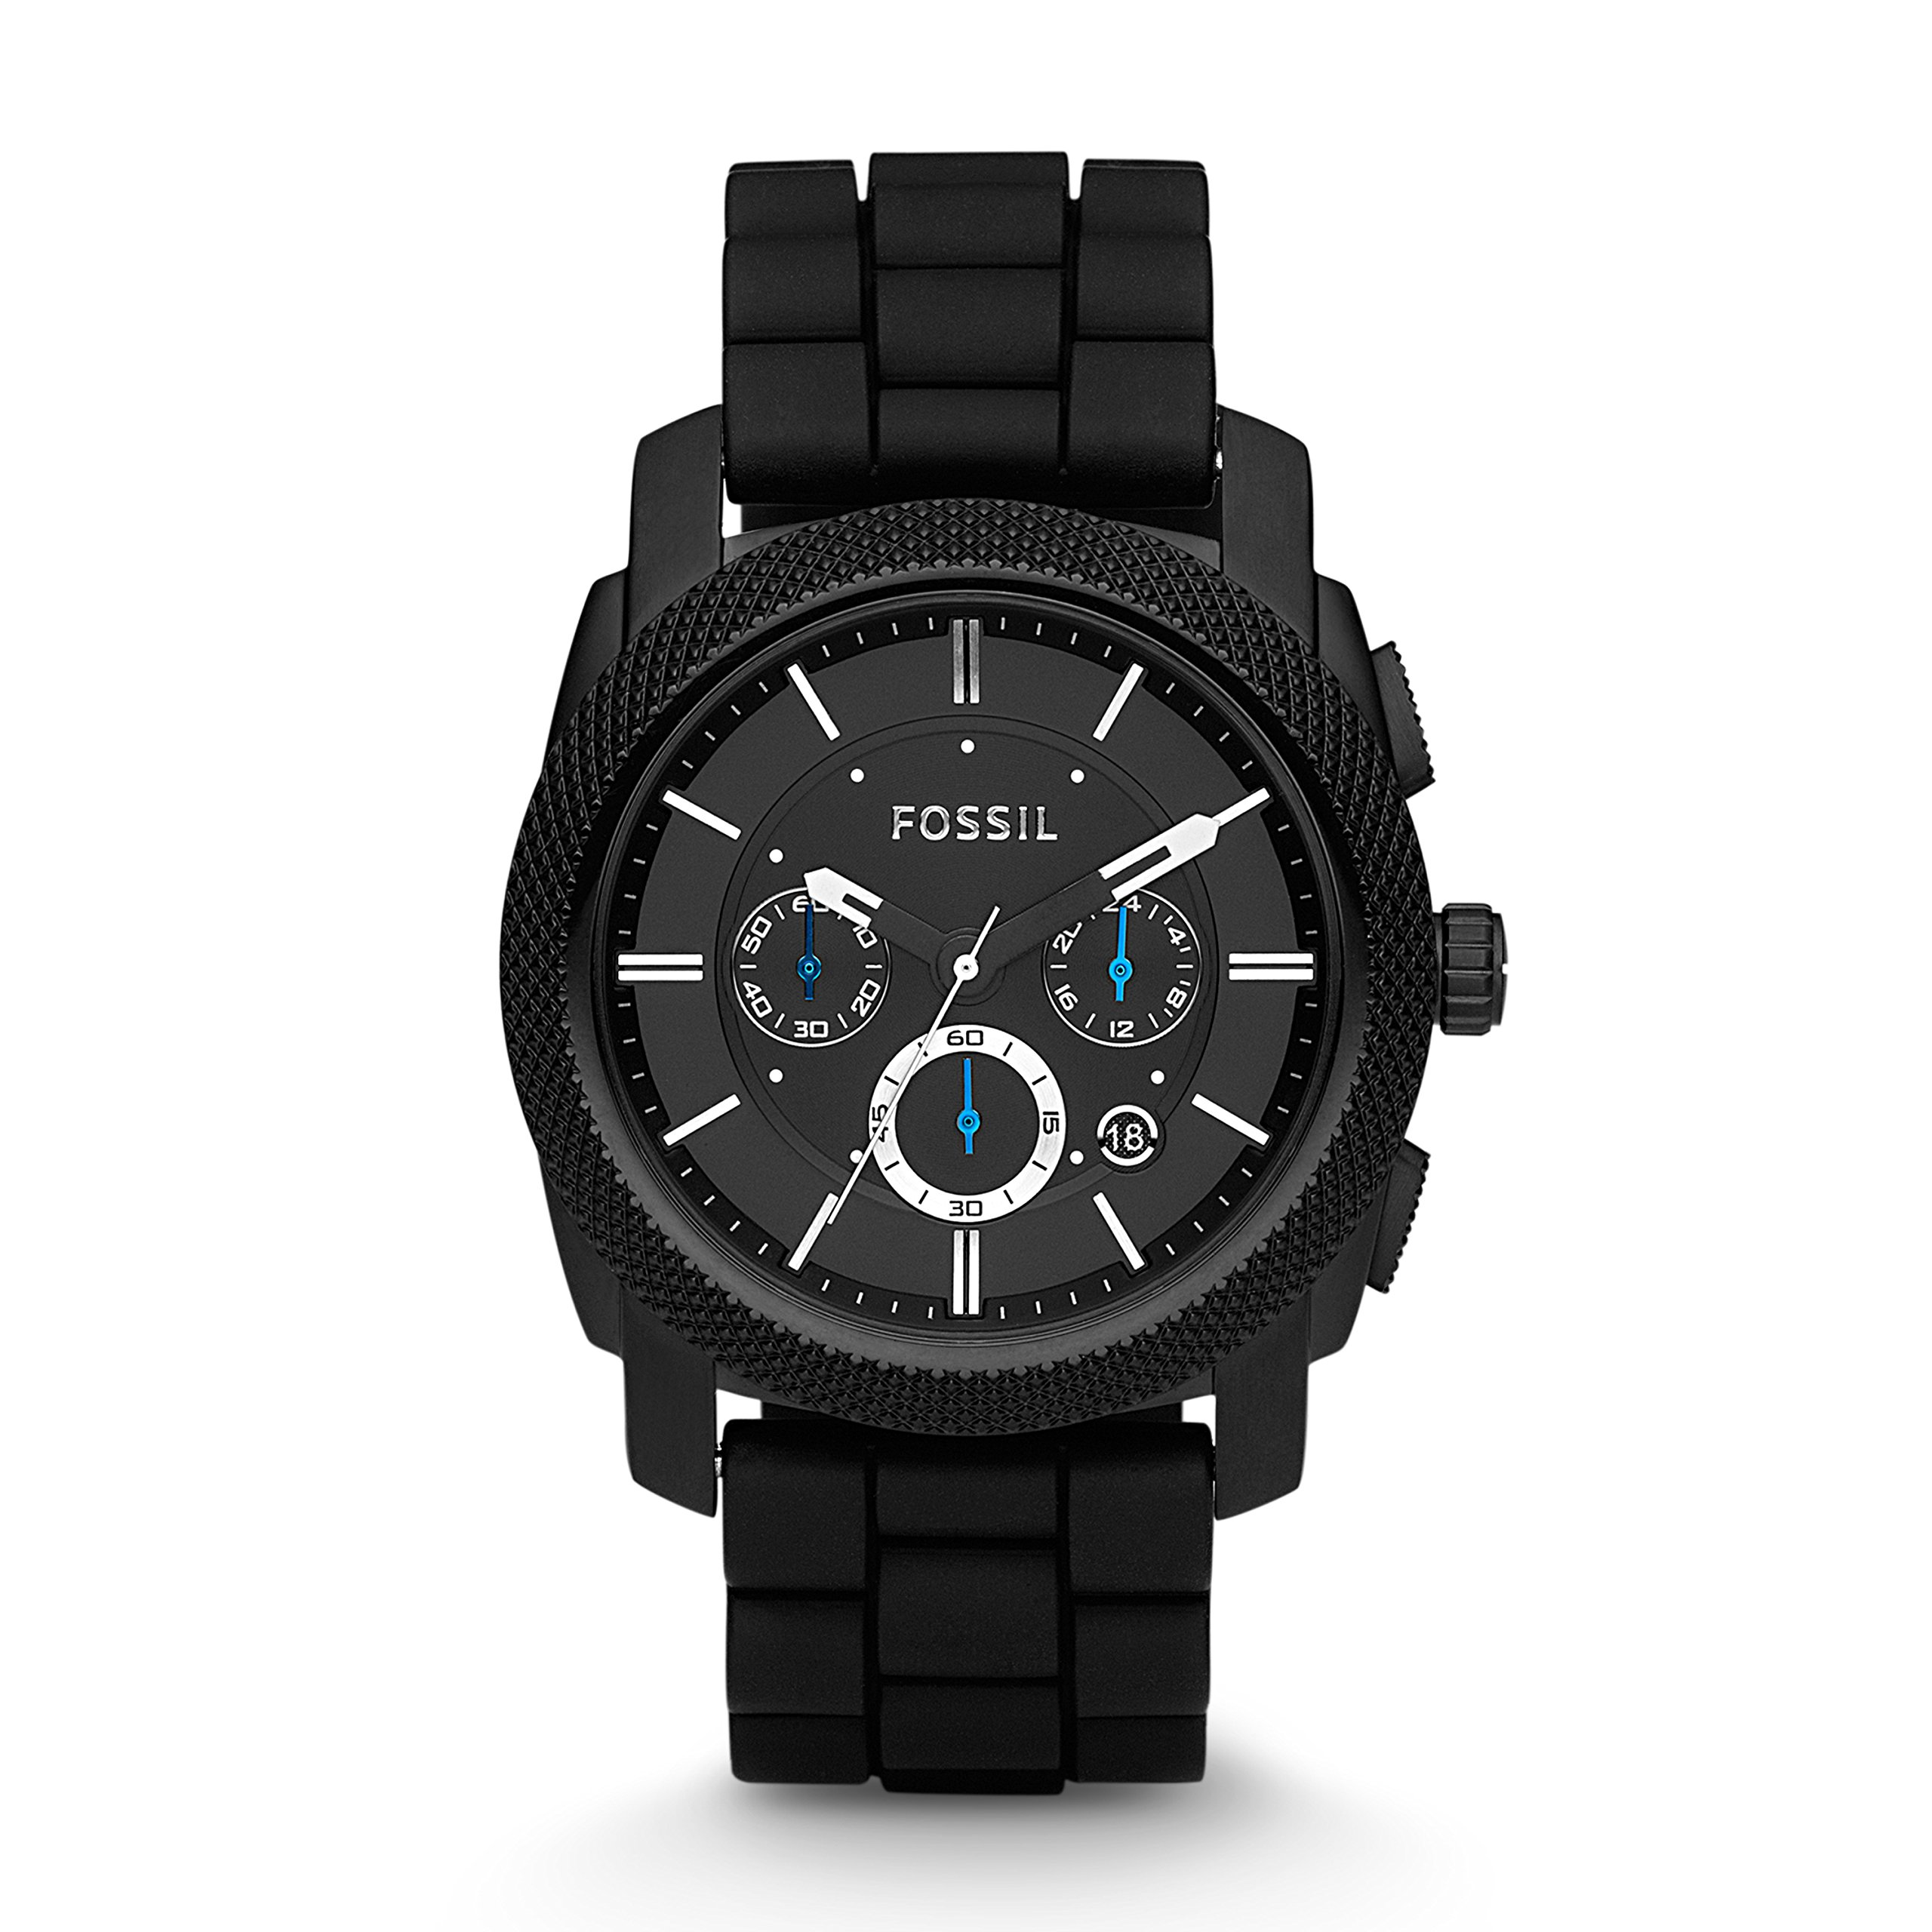 Fossil Men's Machine Quartz Stainless Steel and Silicone Chronograph Watch, Color: Black (Model: FS4487) by Fossil